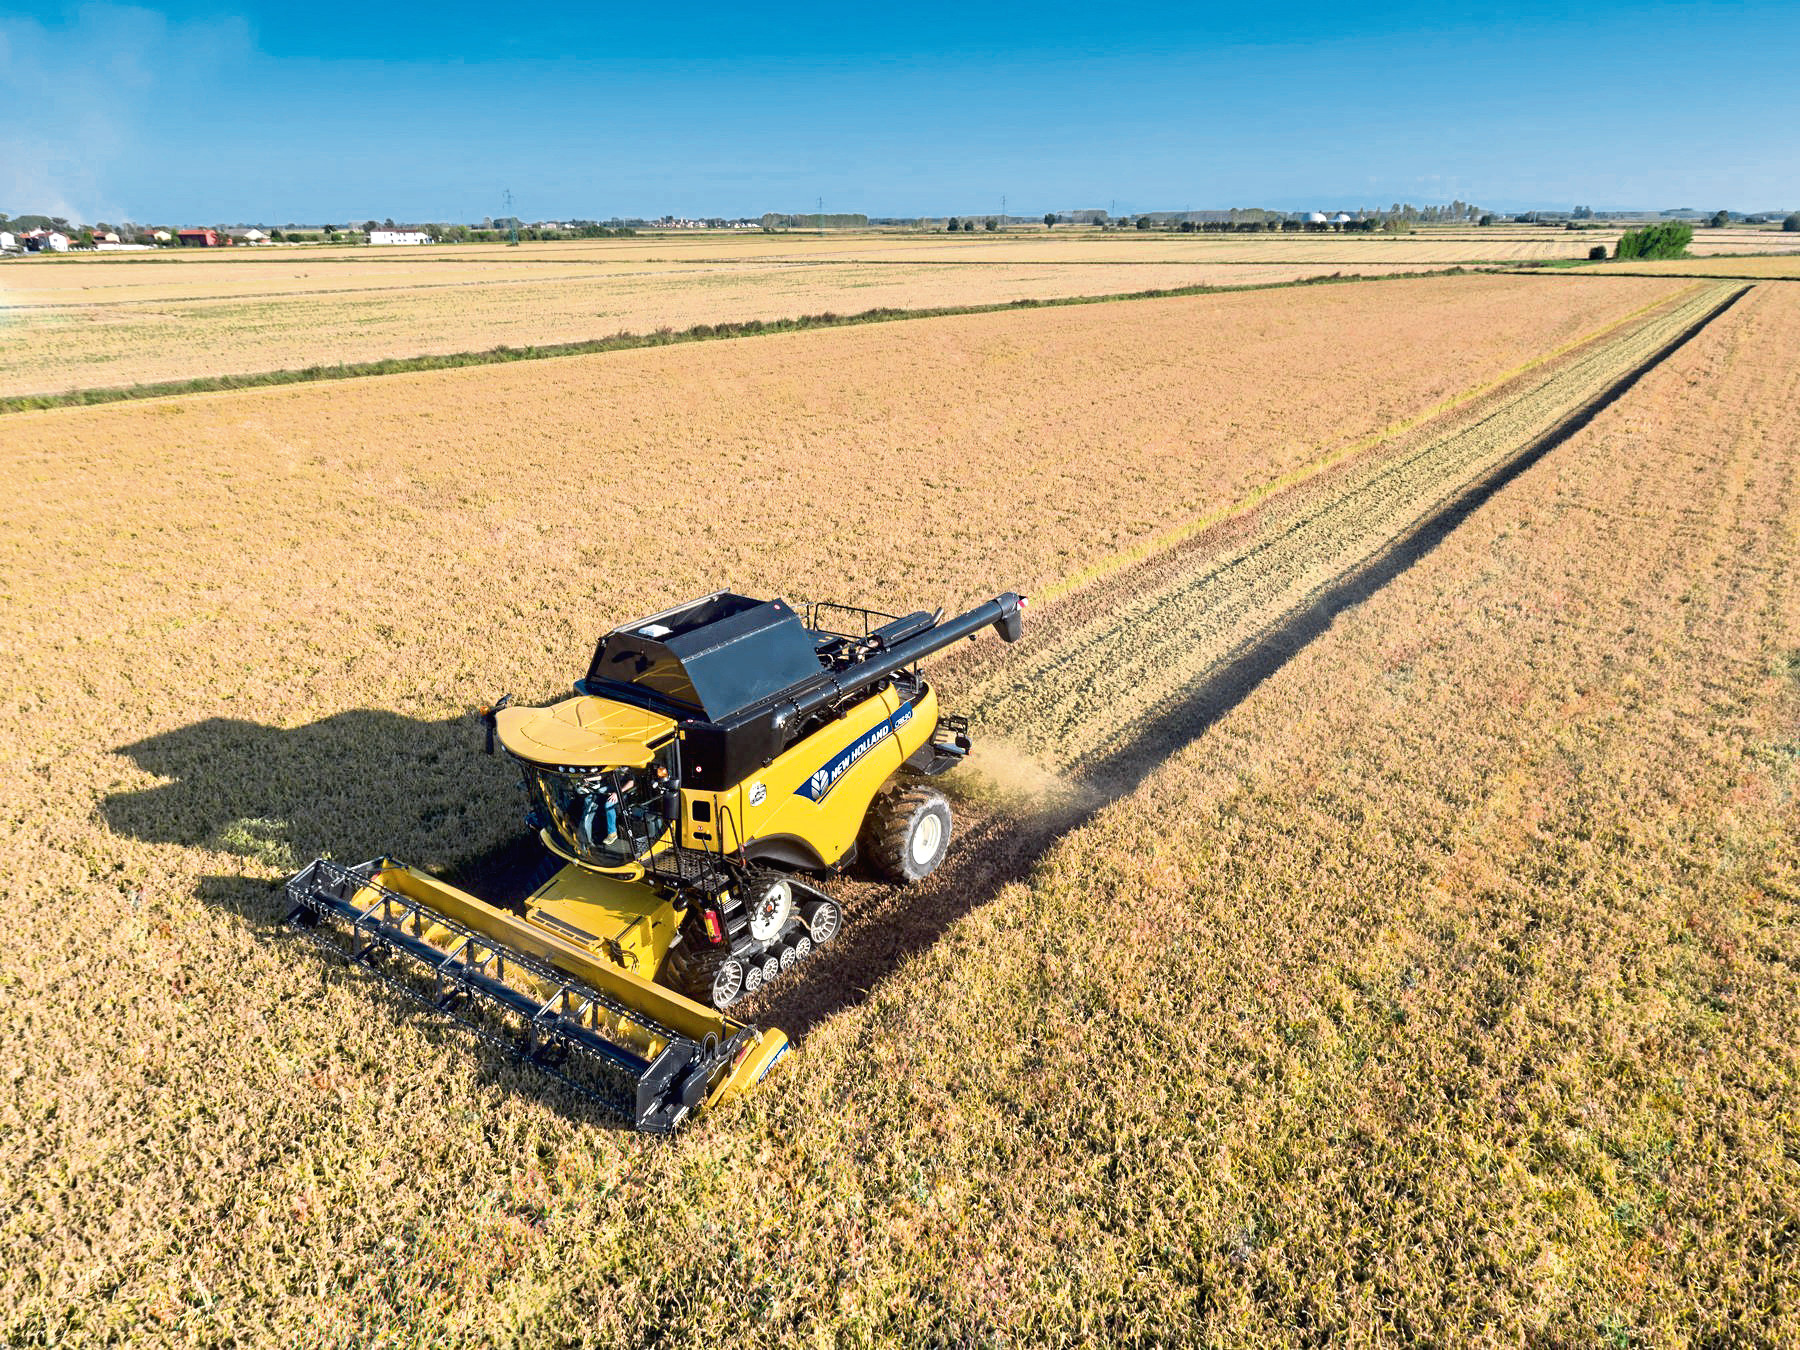 The company specialises in New Holland machinery.